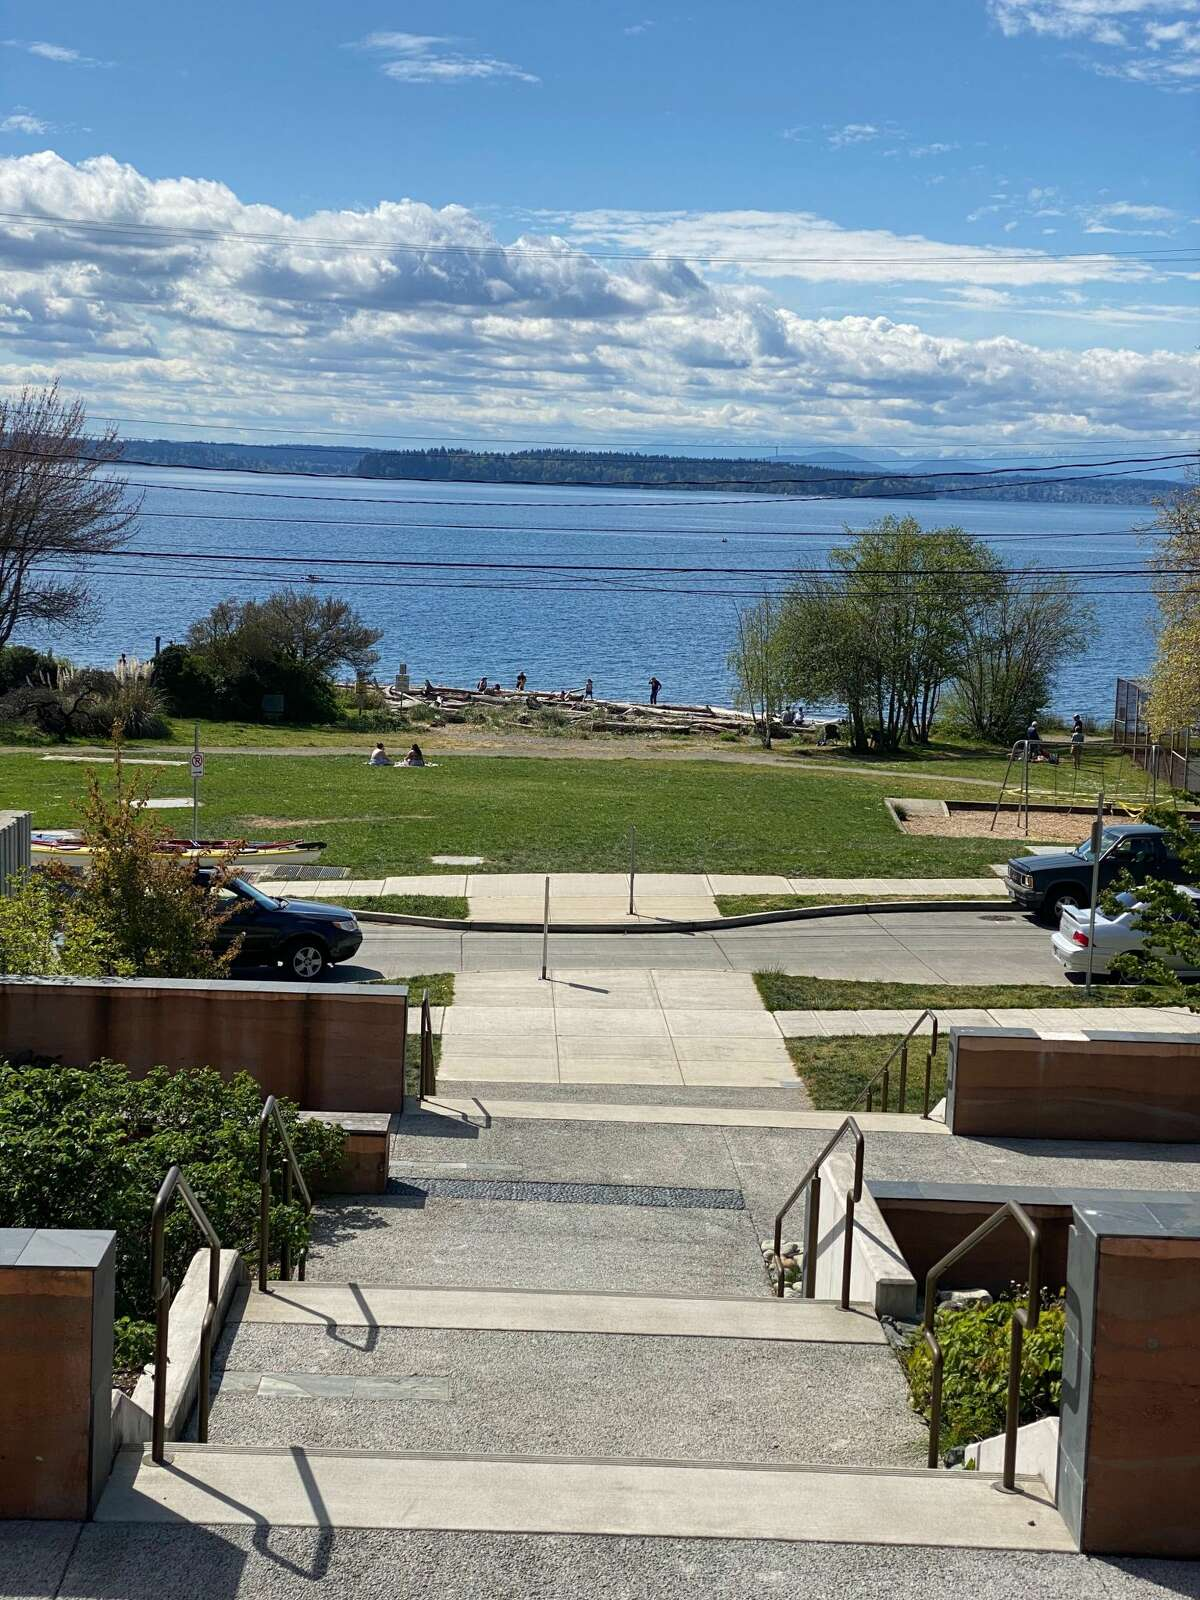 Lowman Beach Park in West Seattle features a rugged beach, tennis court, a grassy area and swings.